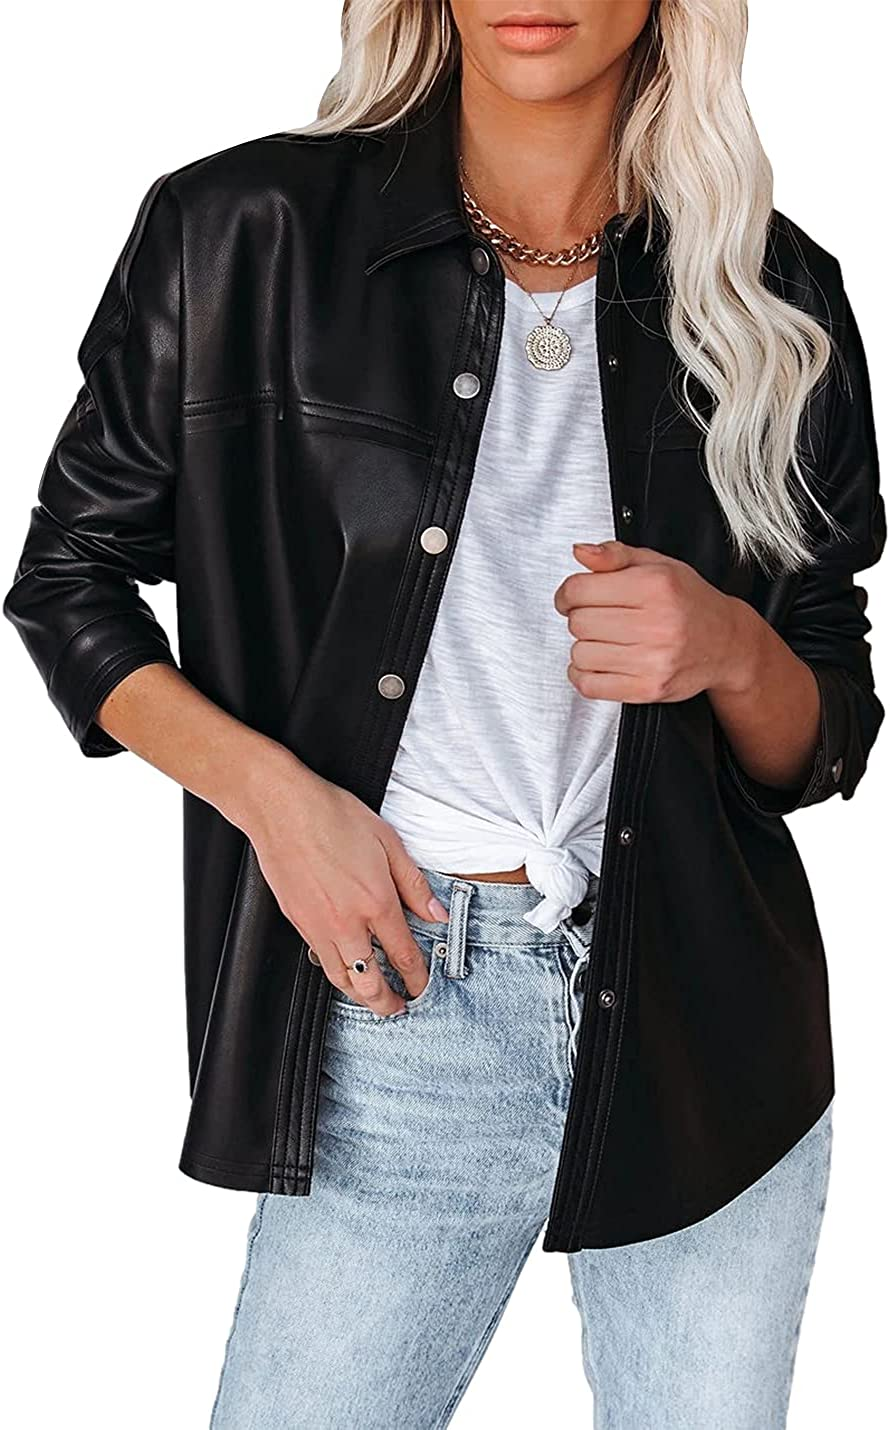 Xishiloft Womens PU Leather Jacket Lapel Collar Long Sleeve Buttons Down Loose Casual Faux Suede Shirt Jacket